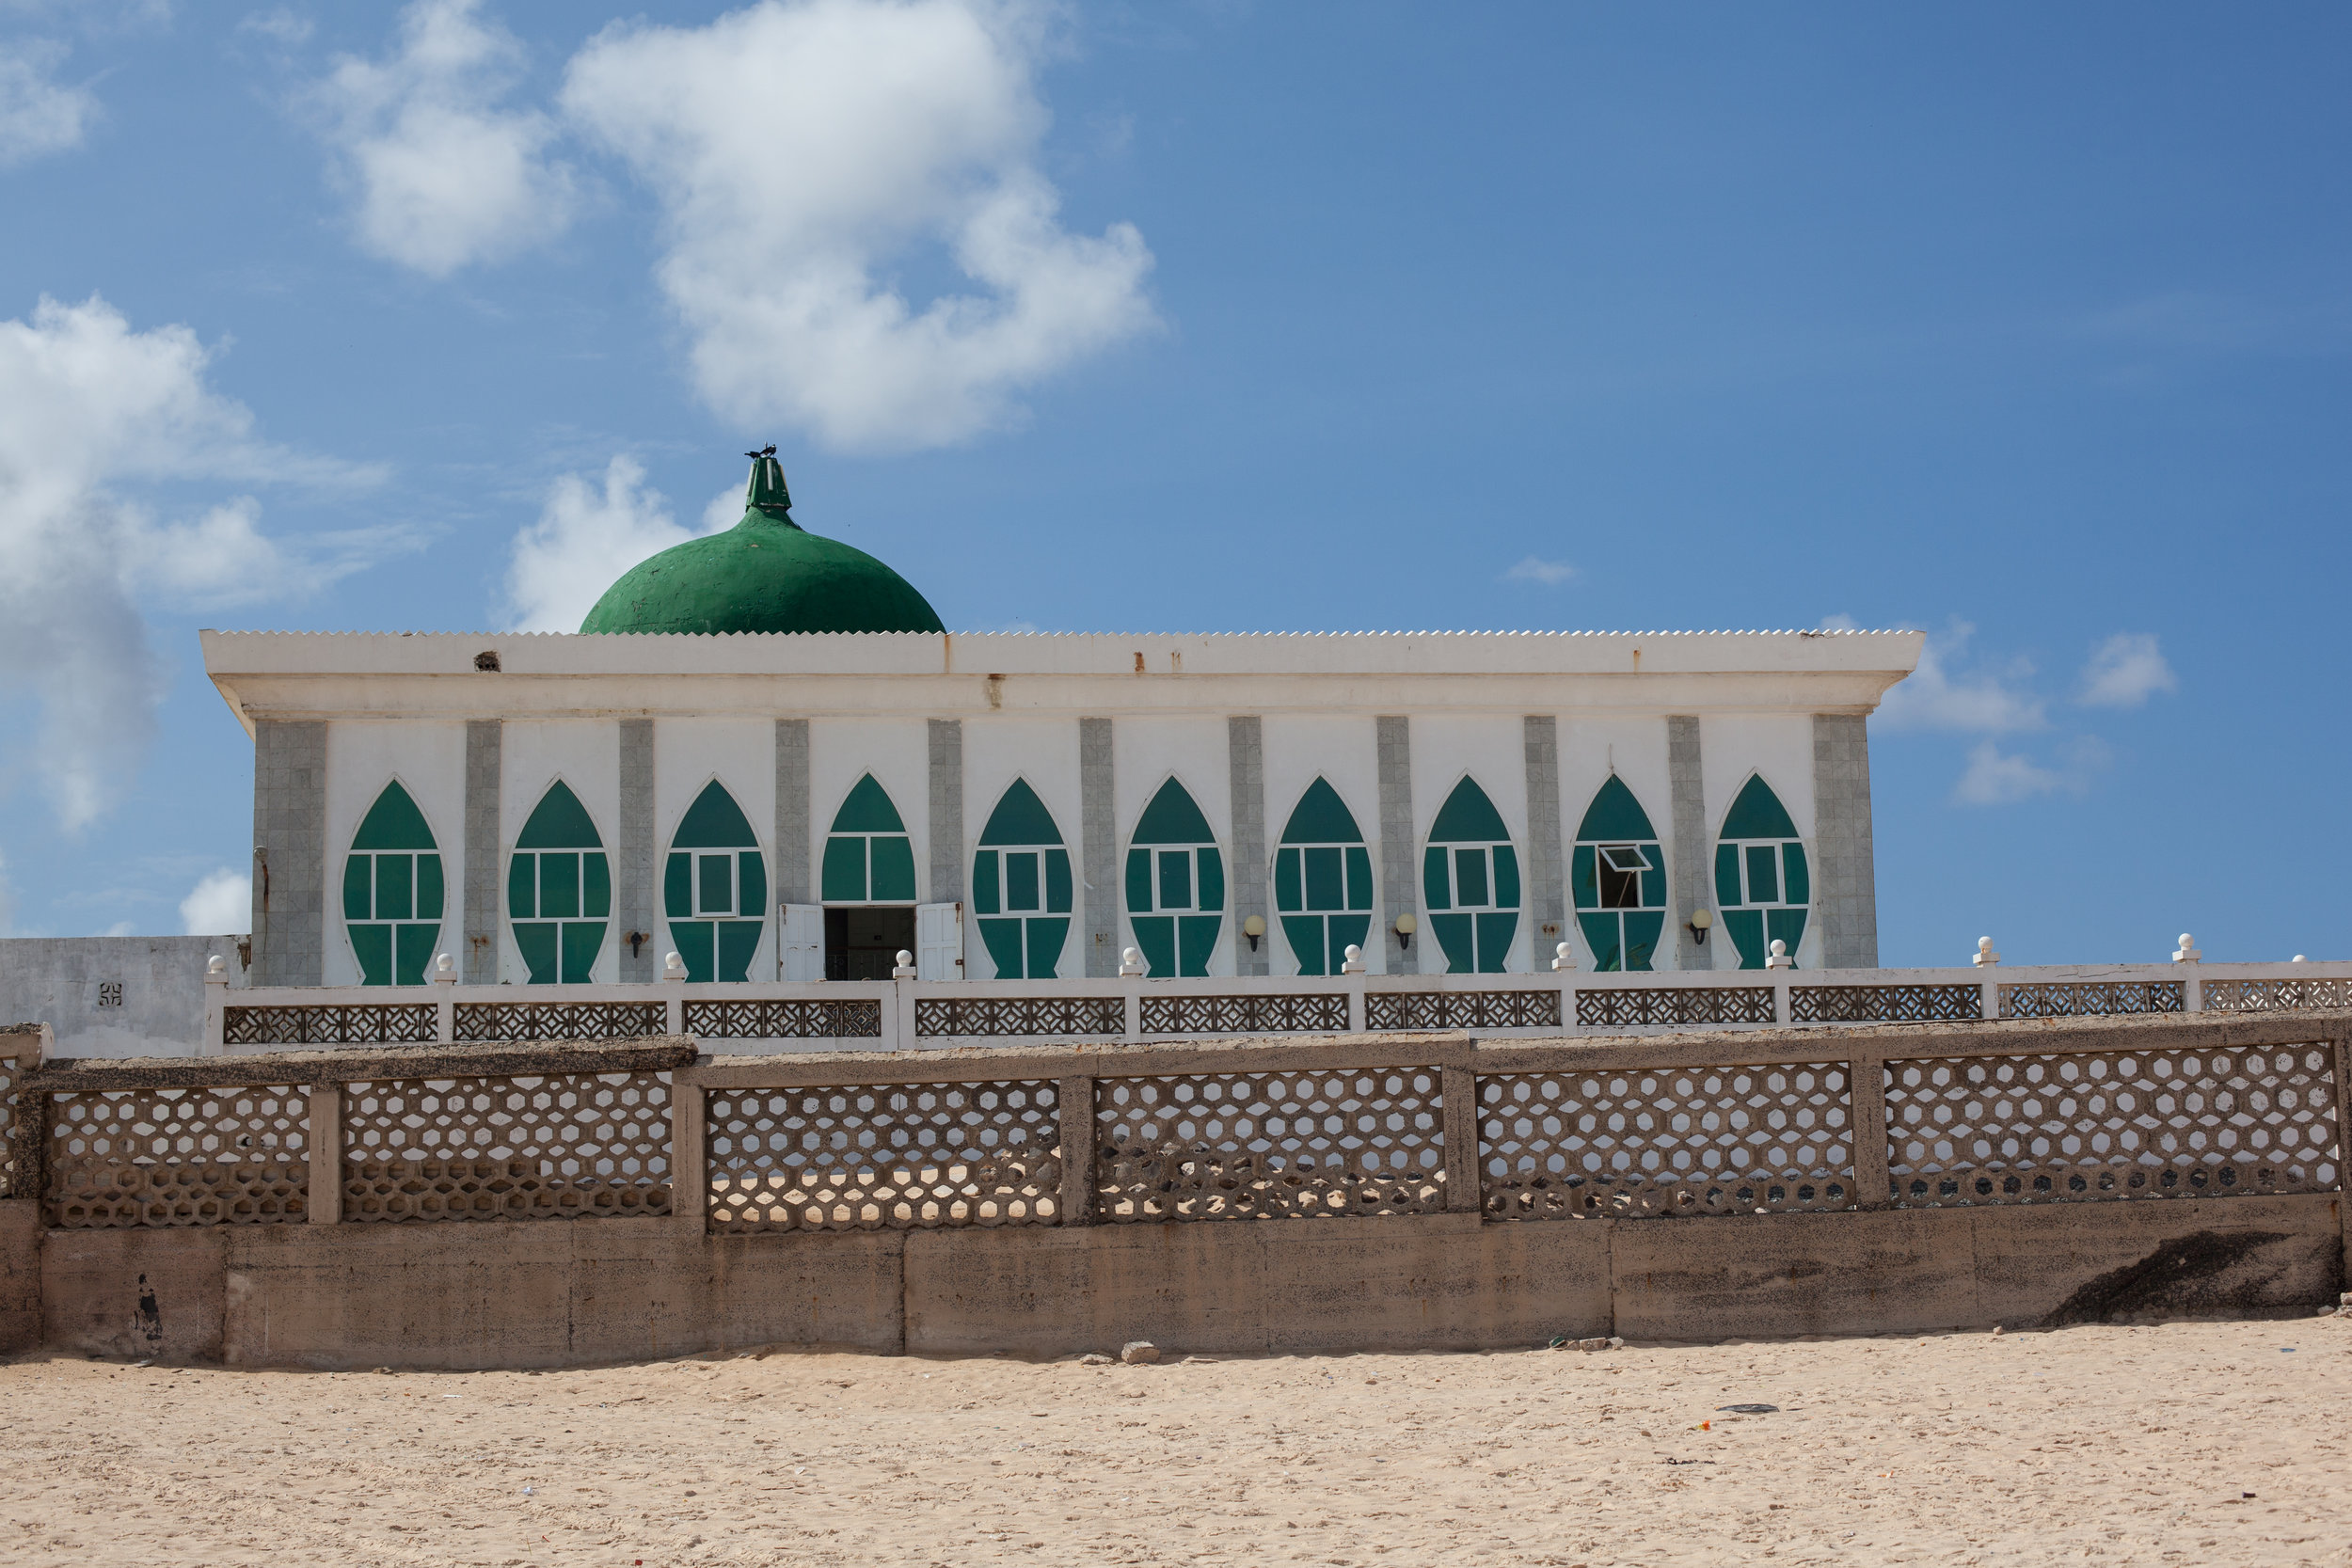 A mosque in West Africa, travel photography by Geraint Rowland.